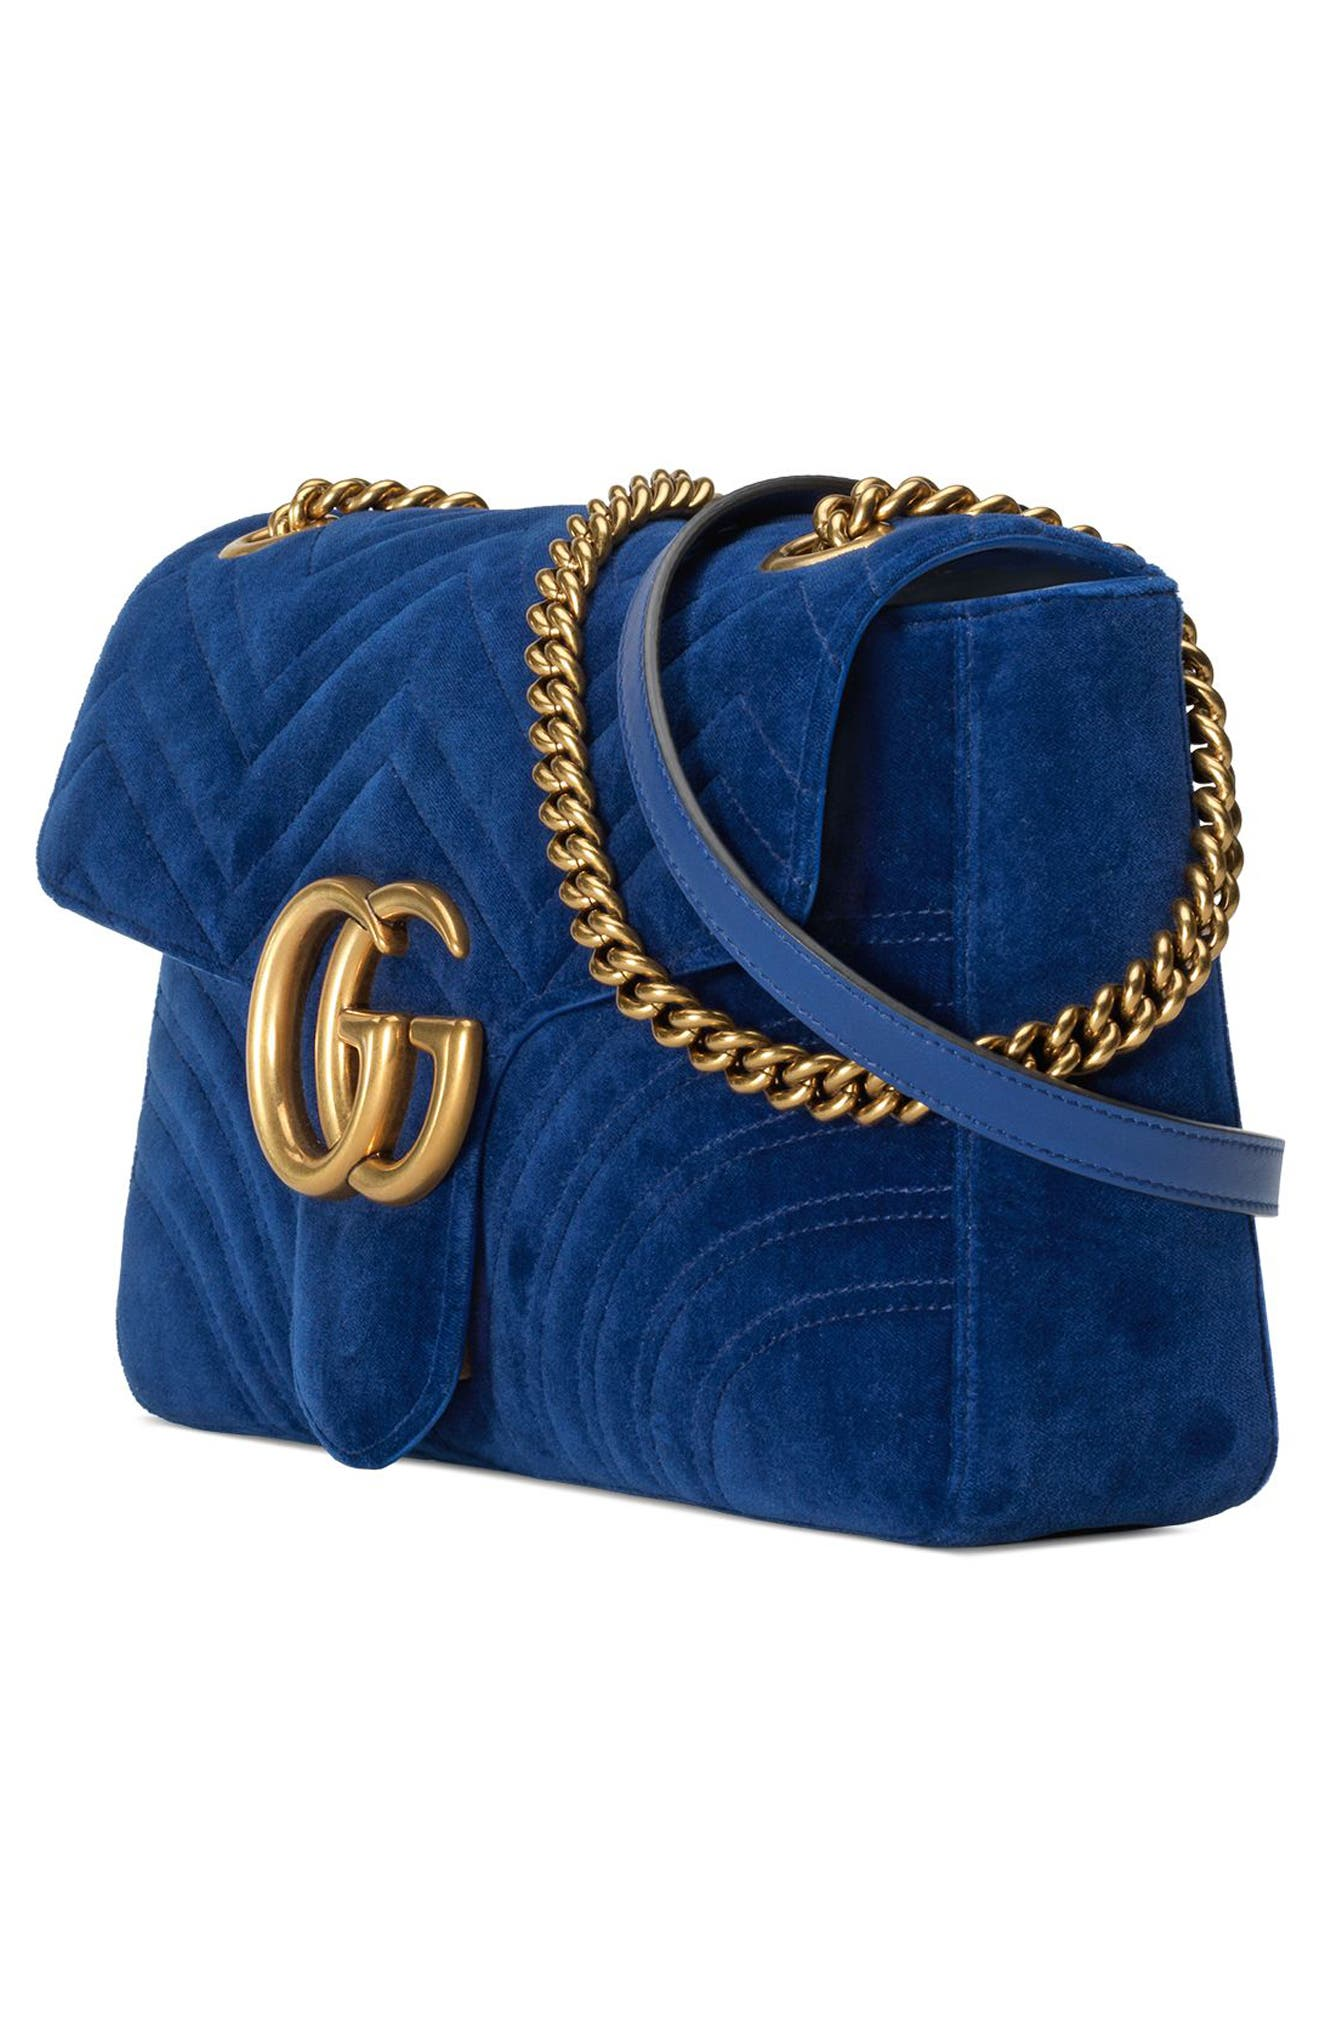 Medium GG Marmont 2.0 Matelassé Velvet Shoulder Bag,                             Alternate thumbnail 4, color,                             Cobalt/ Cobalt